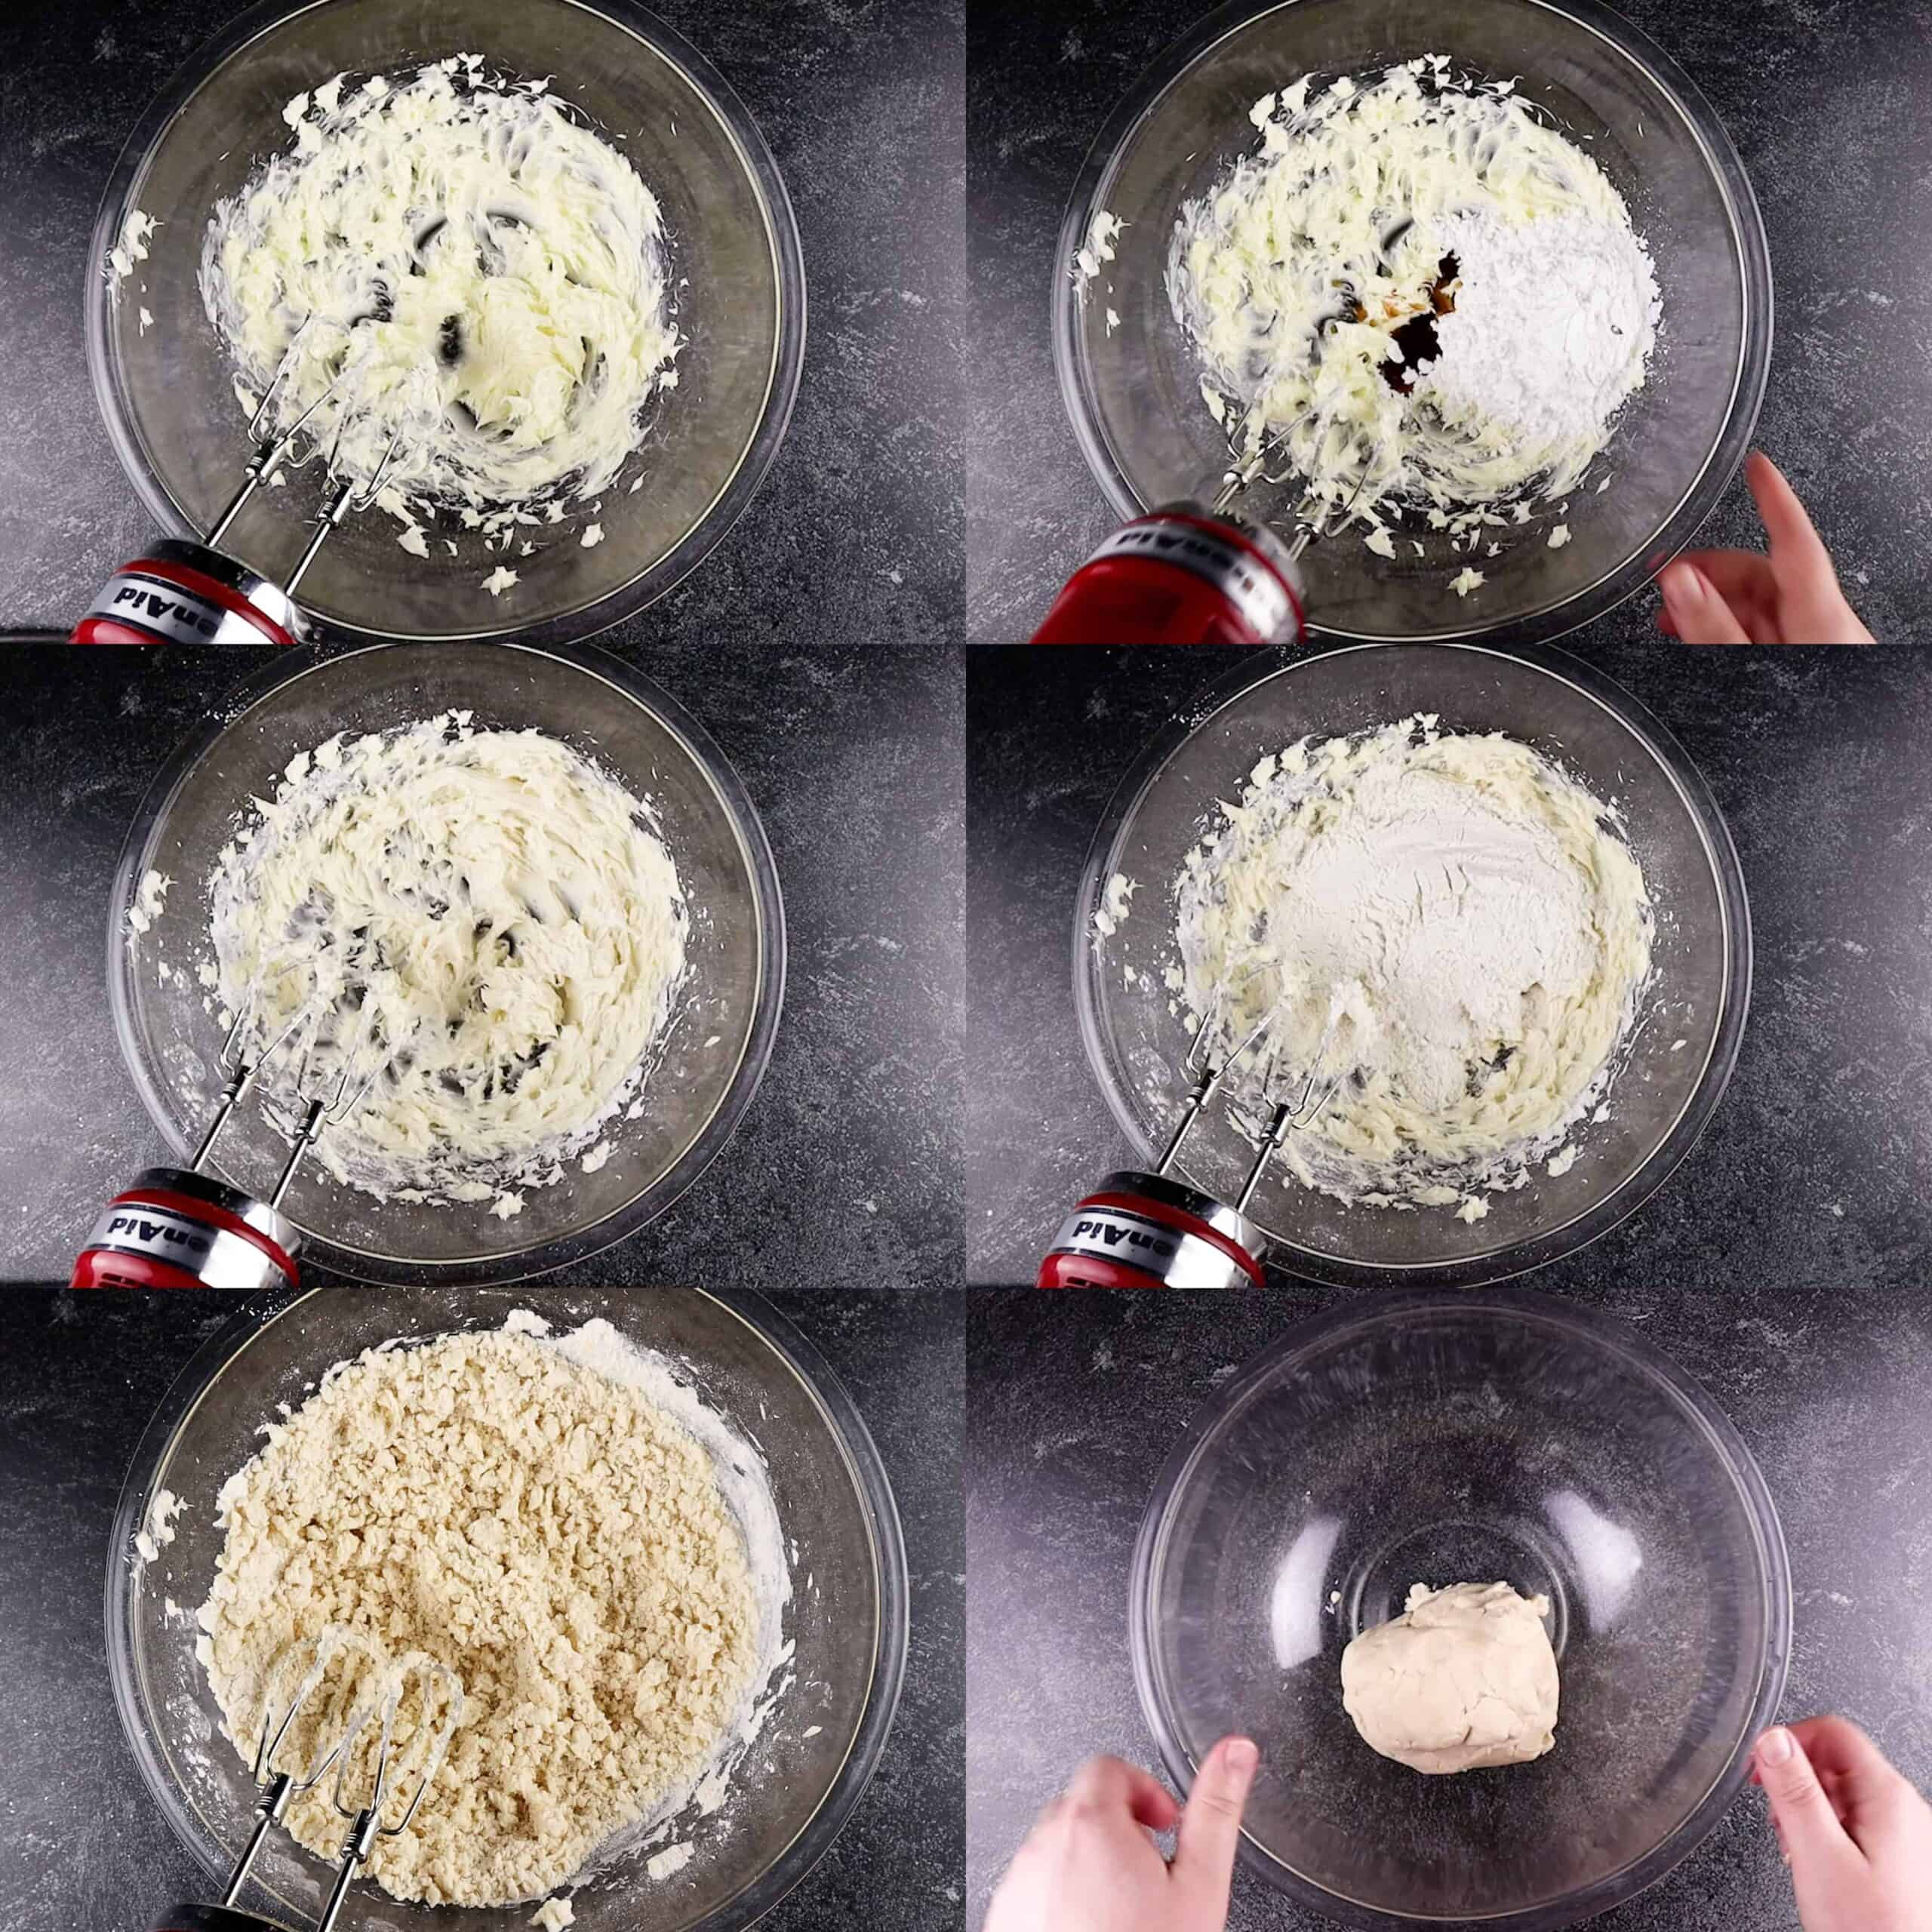 Make in the shortbread cookies dough